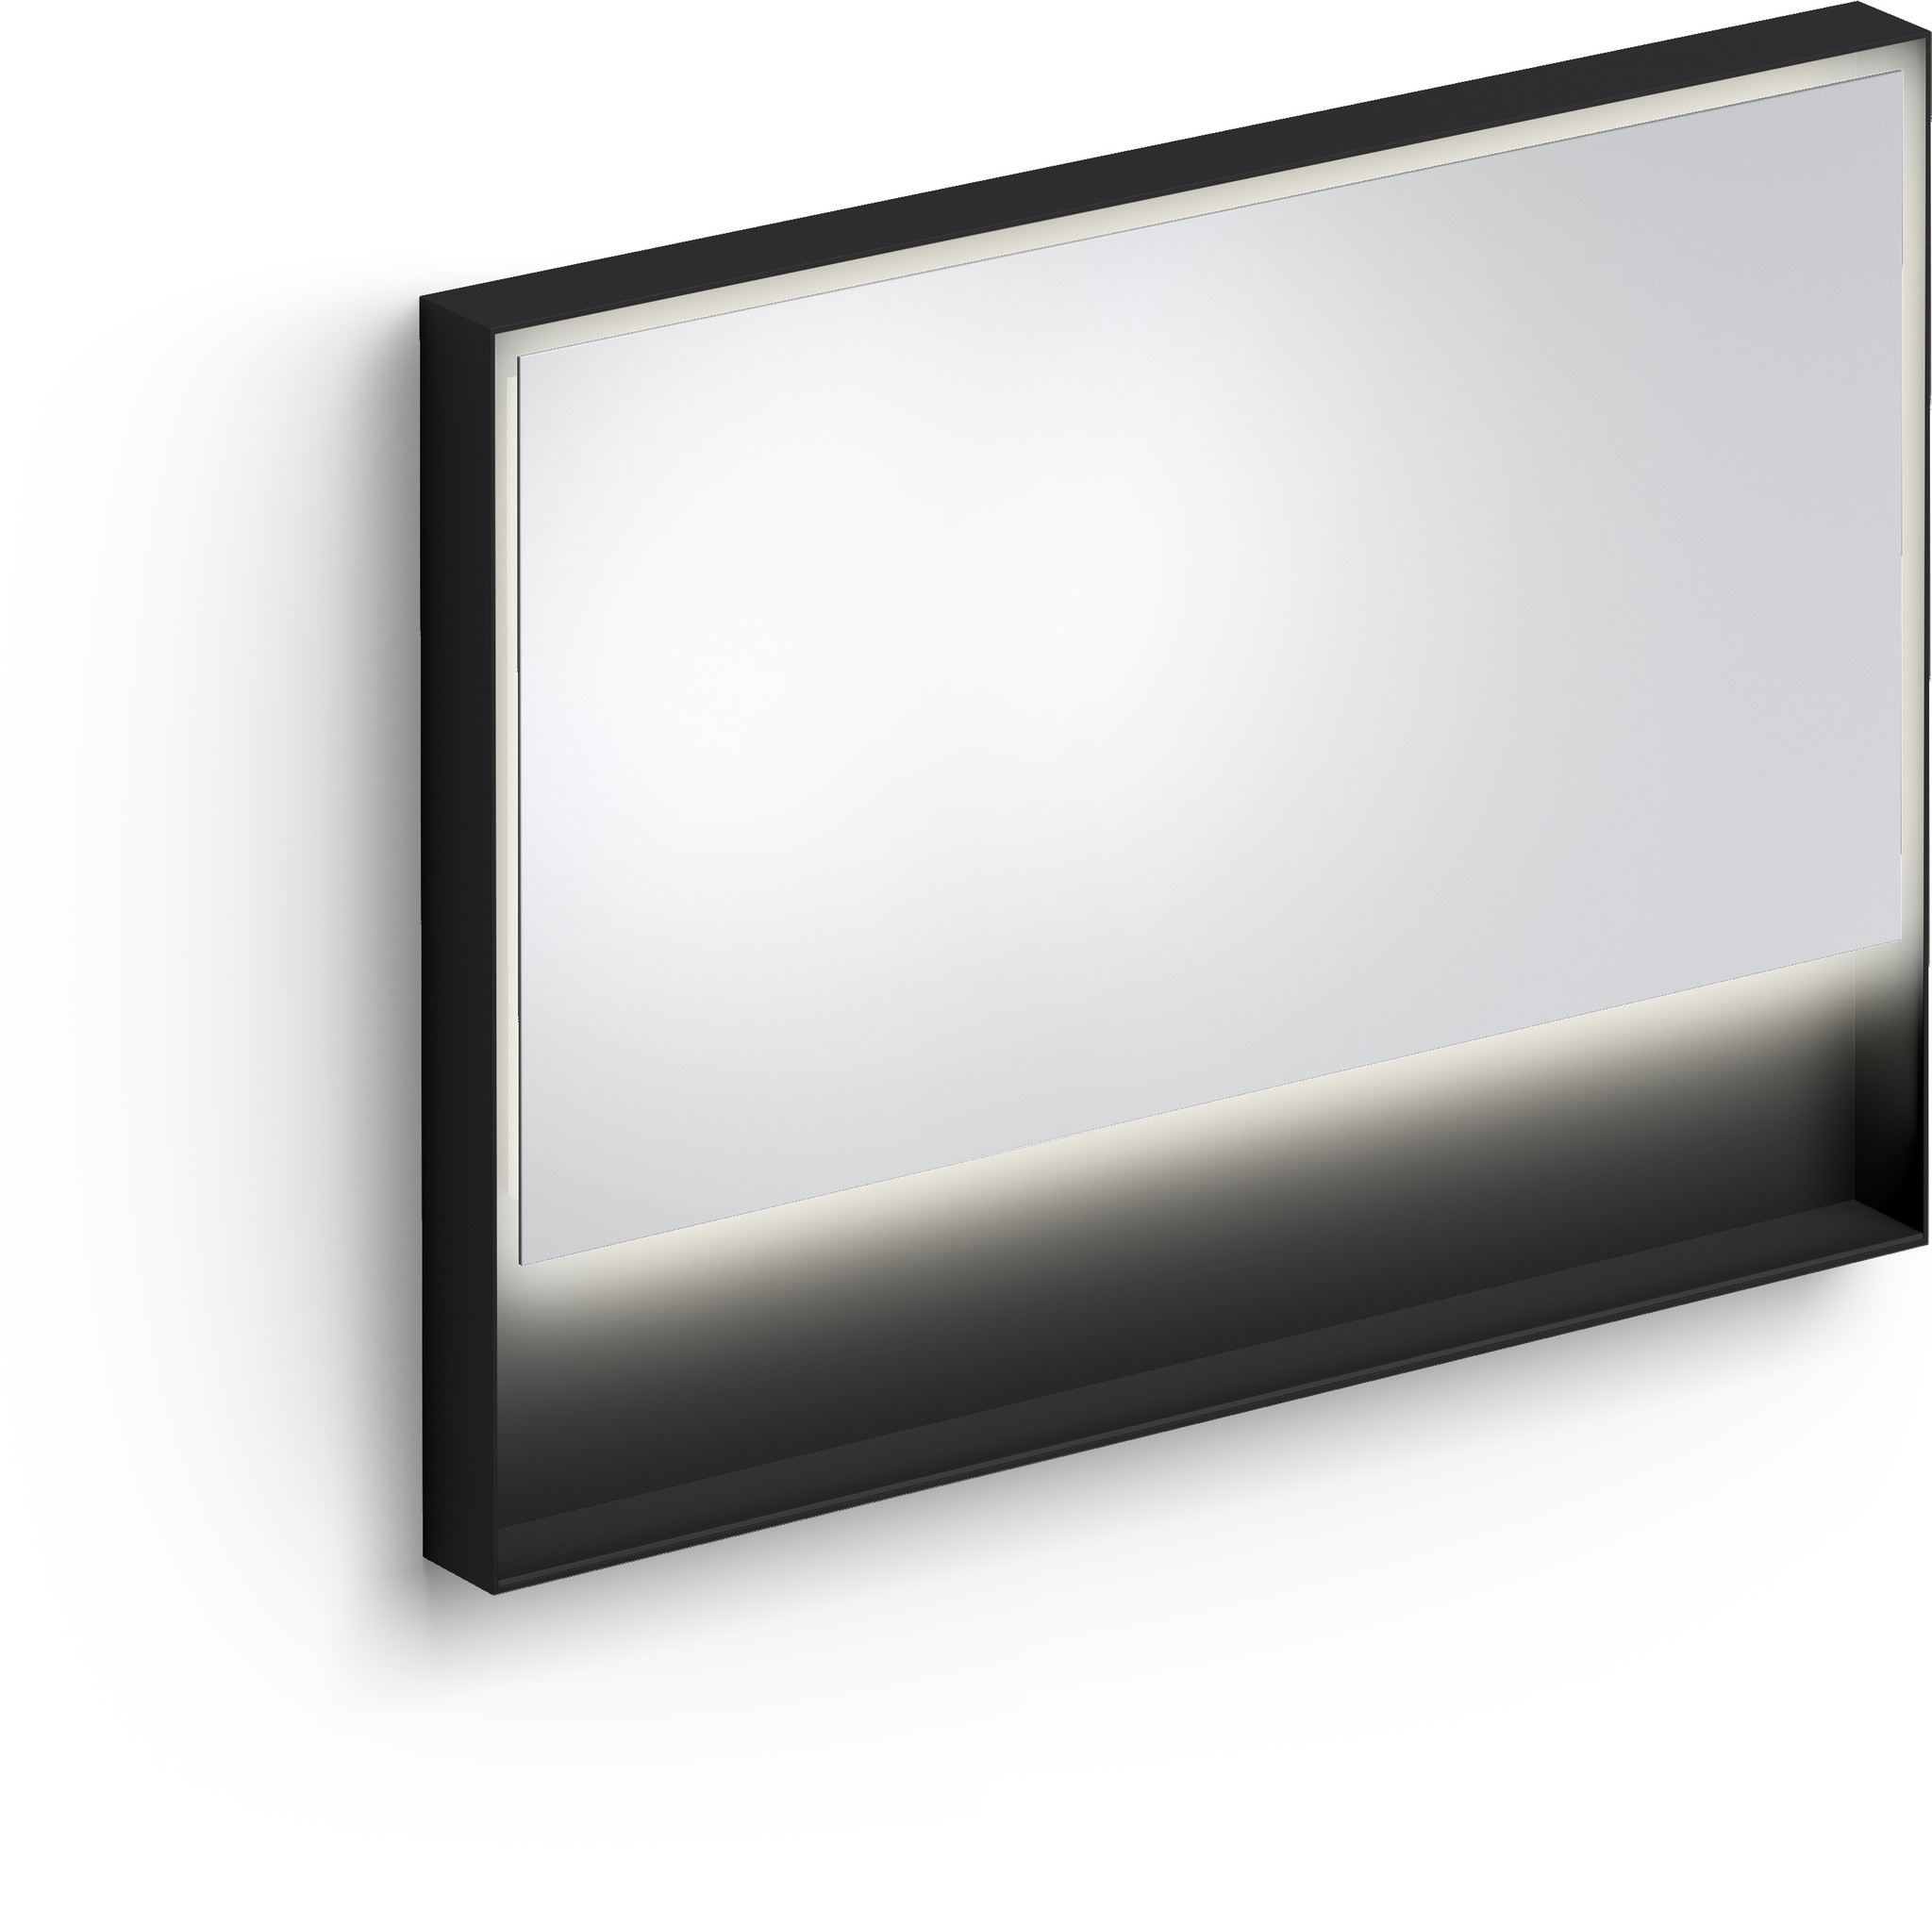 Look at Me Mirror 110 cm with frame and LED-lighting